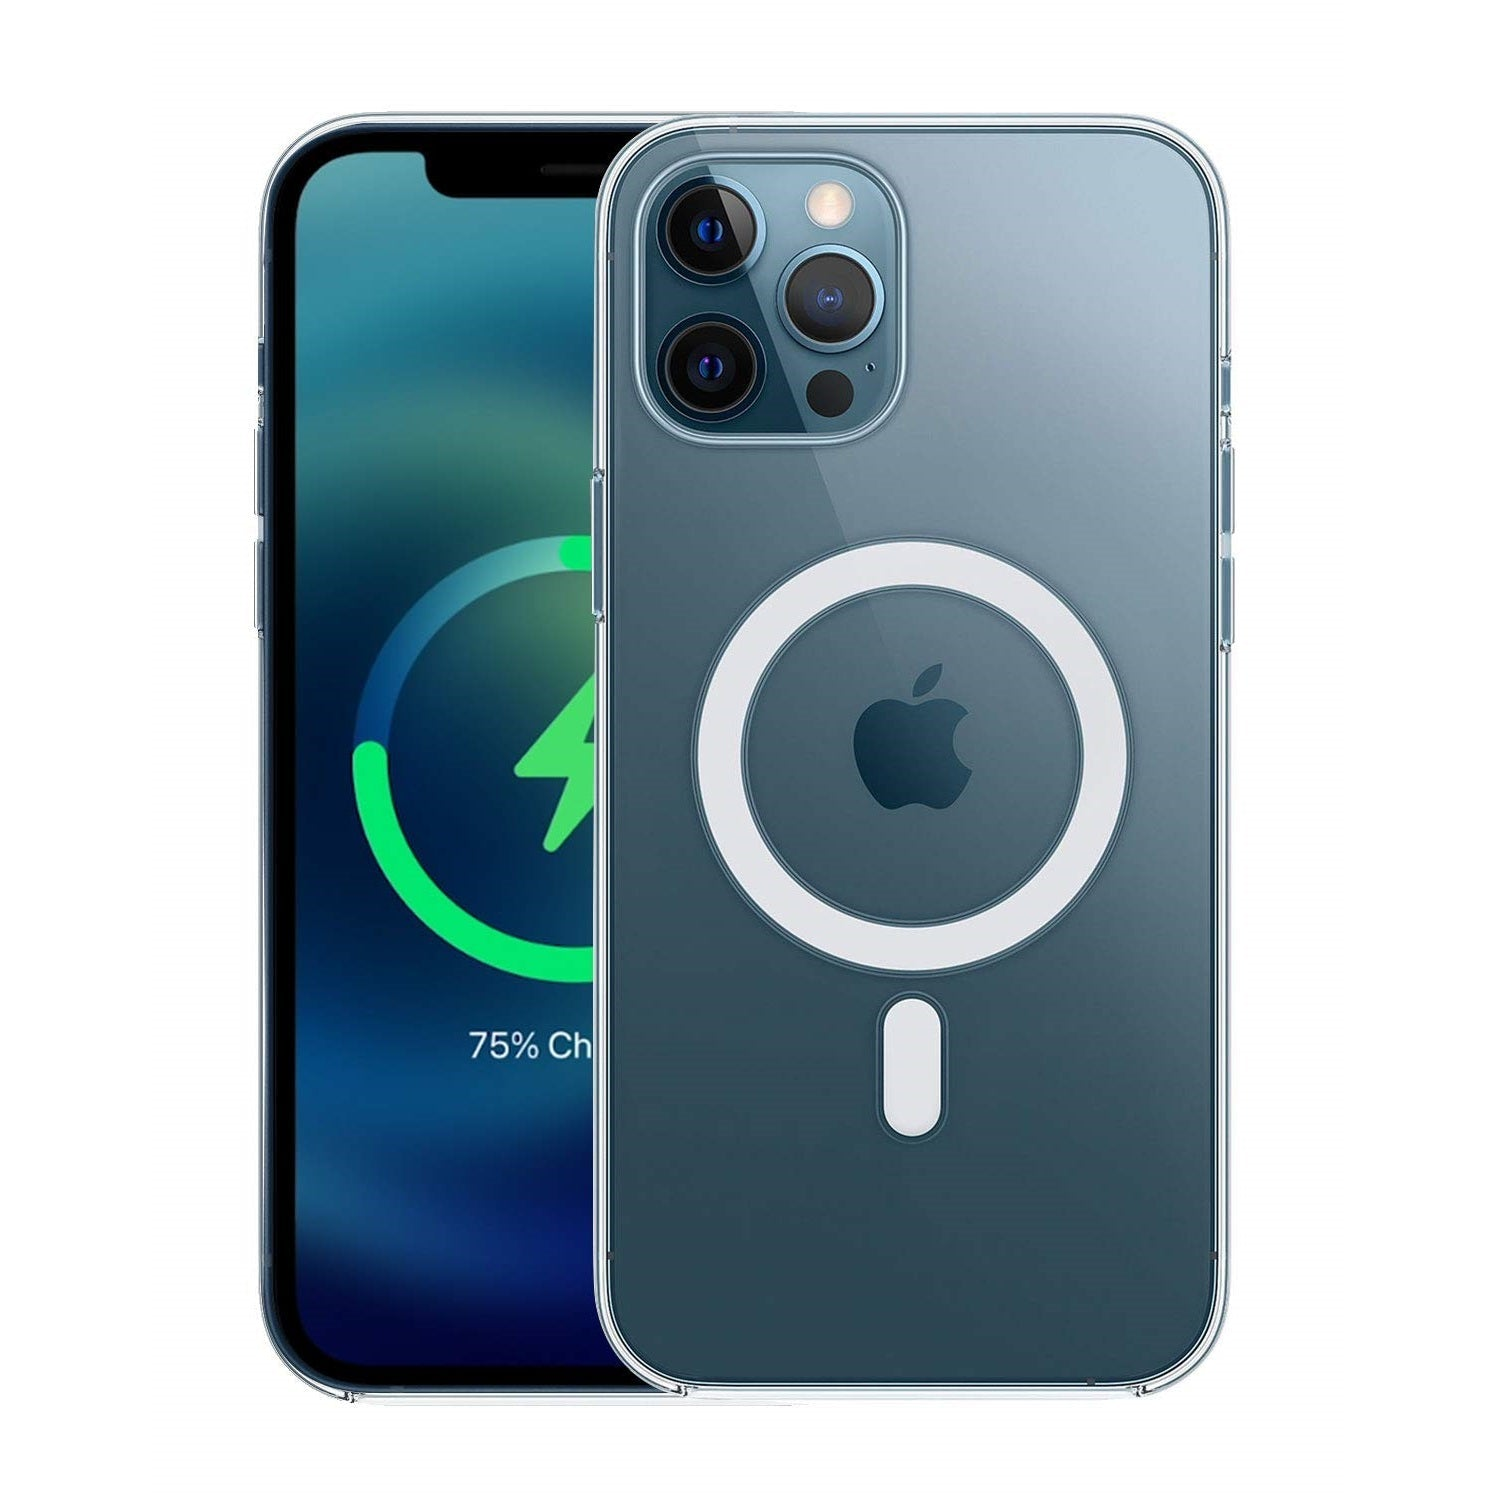 "RAEGR iPhone 12 Pro Max 5G MagFix Magnetic Case, Supports Mag-Safe Wireless Charging 6.7""- Air Hybrid Case"